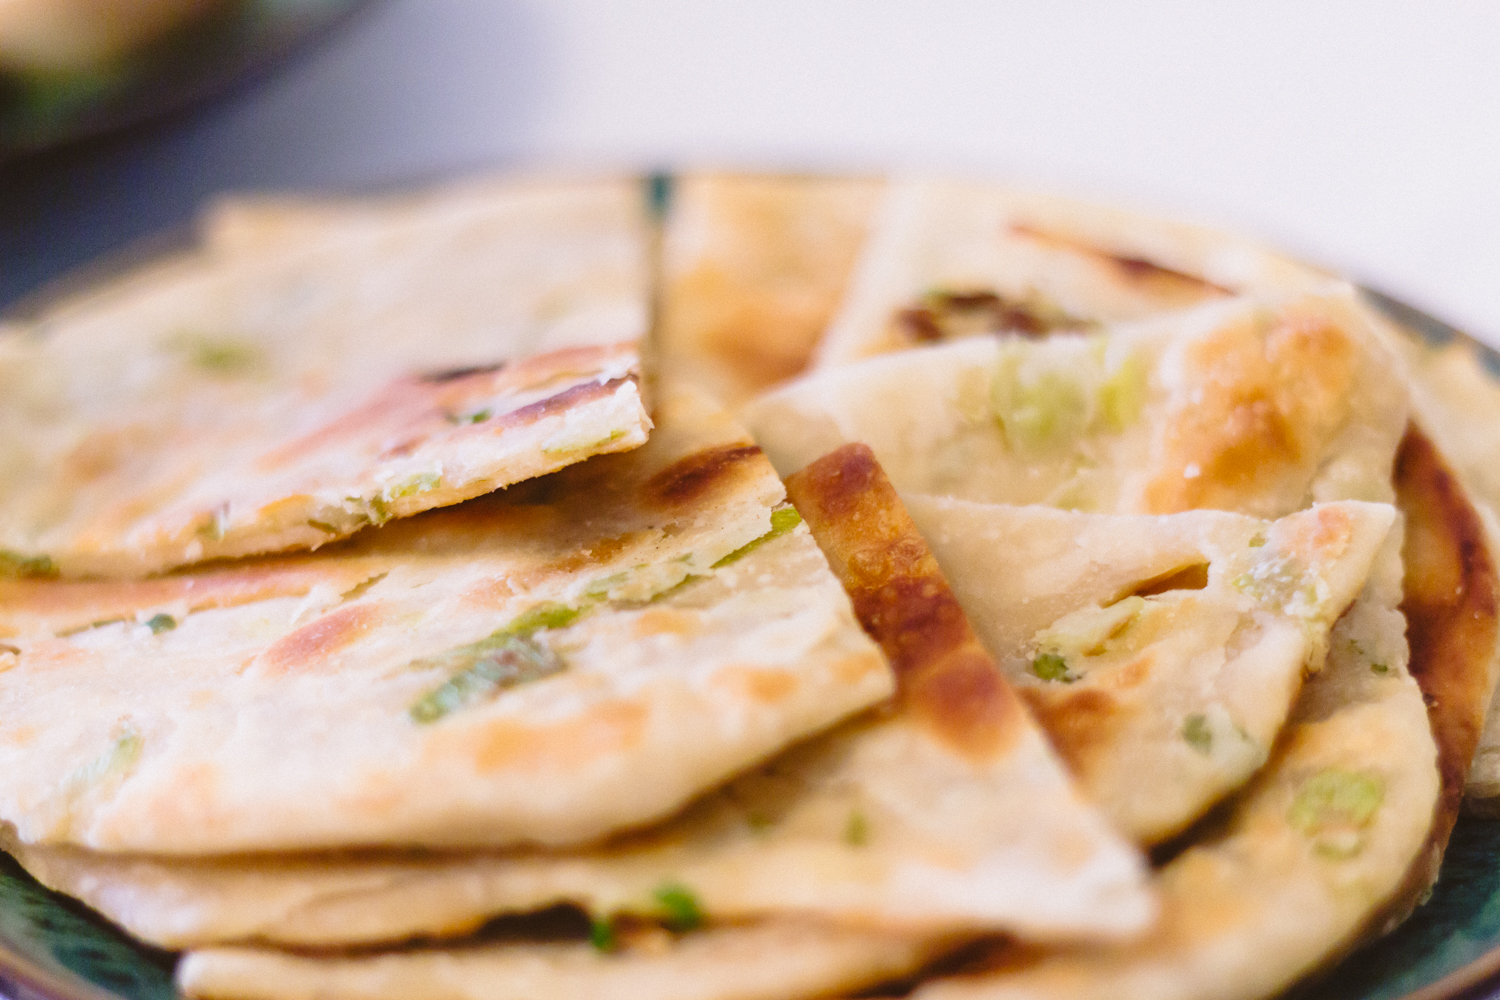 The aforementioned Scallion Pancakes